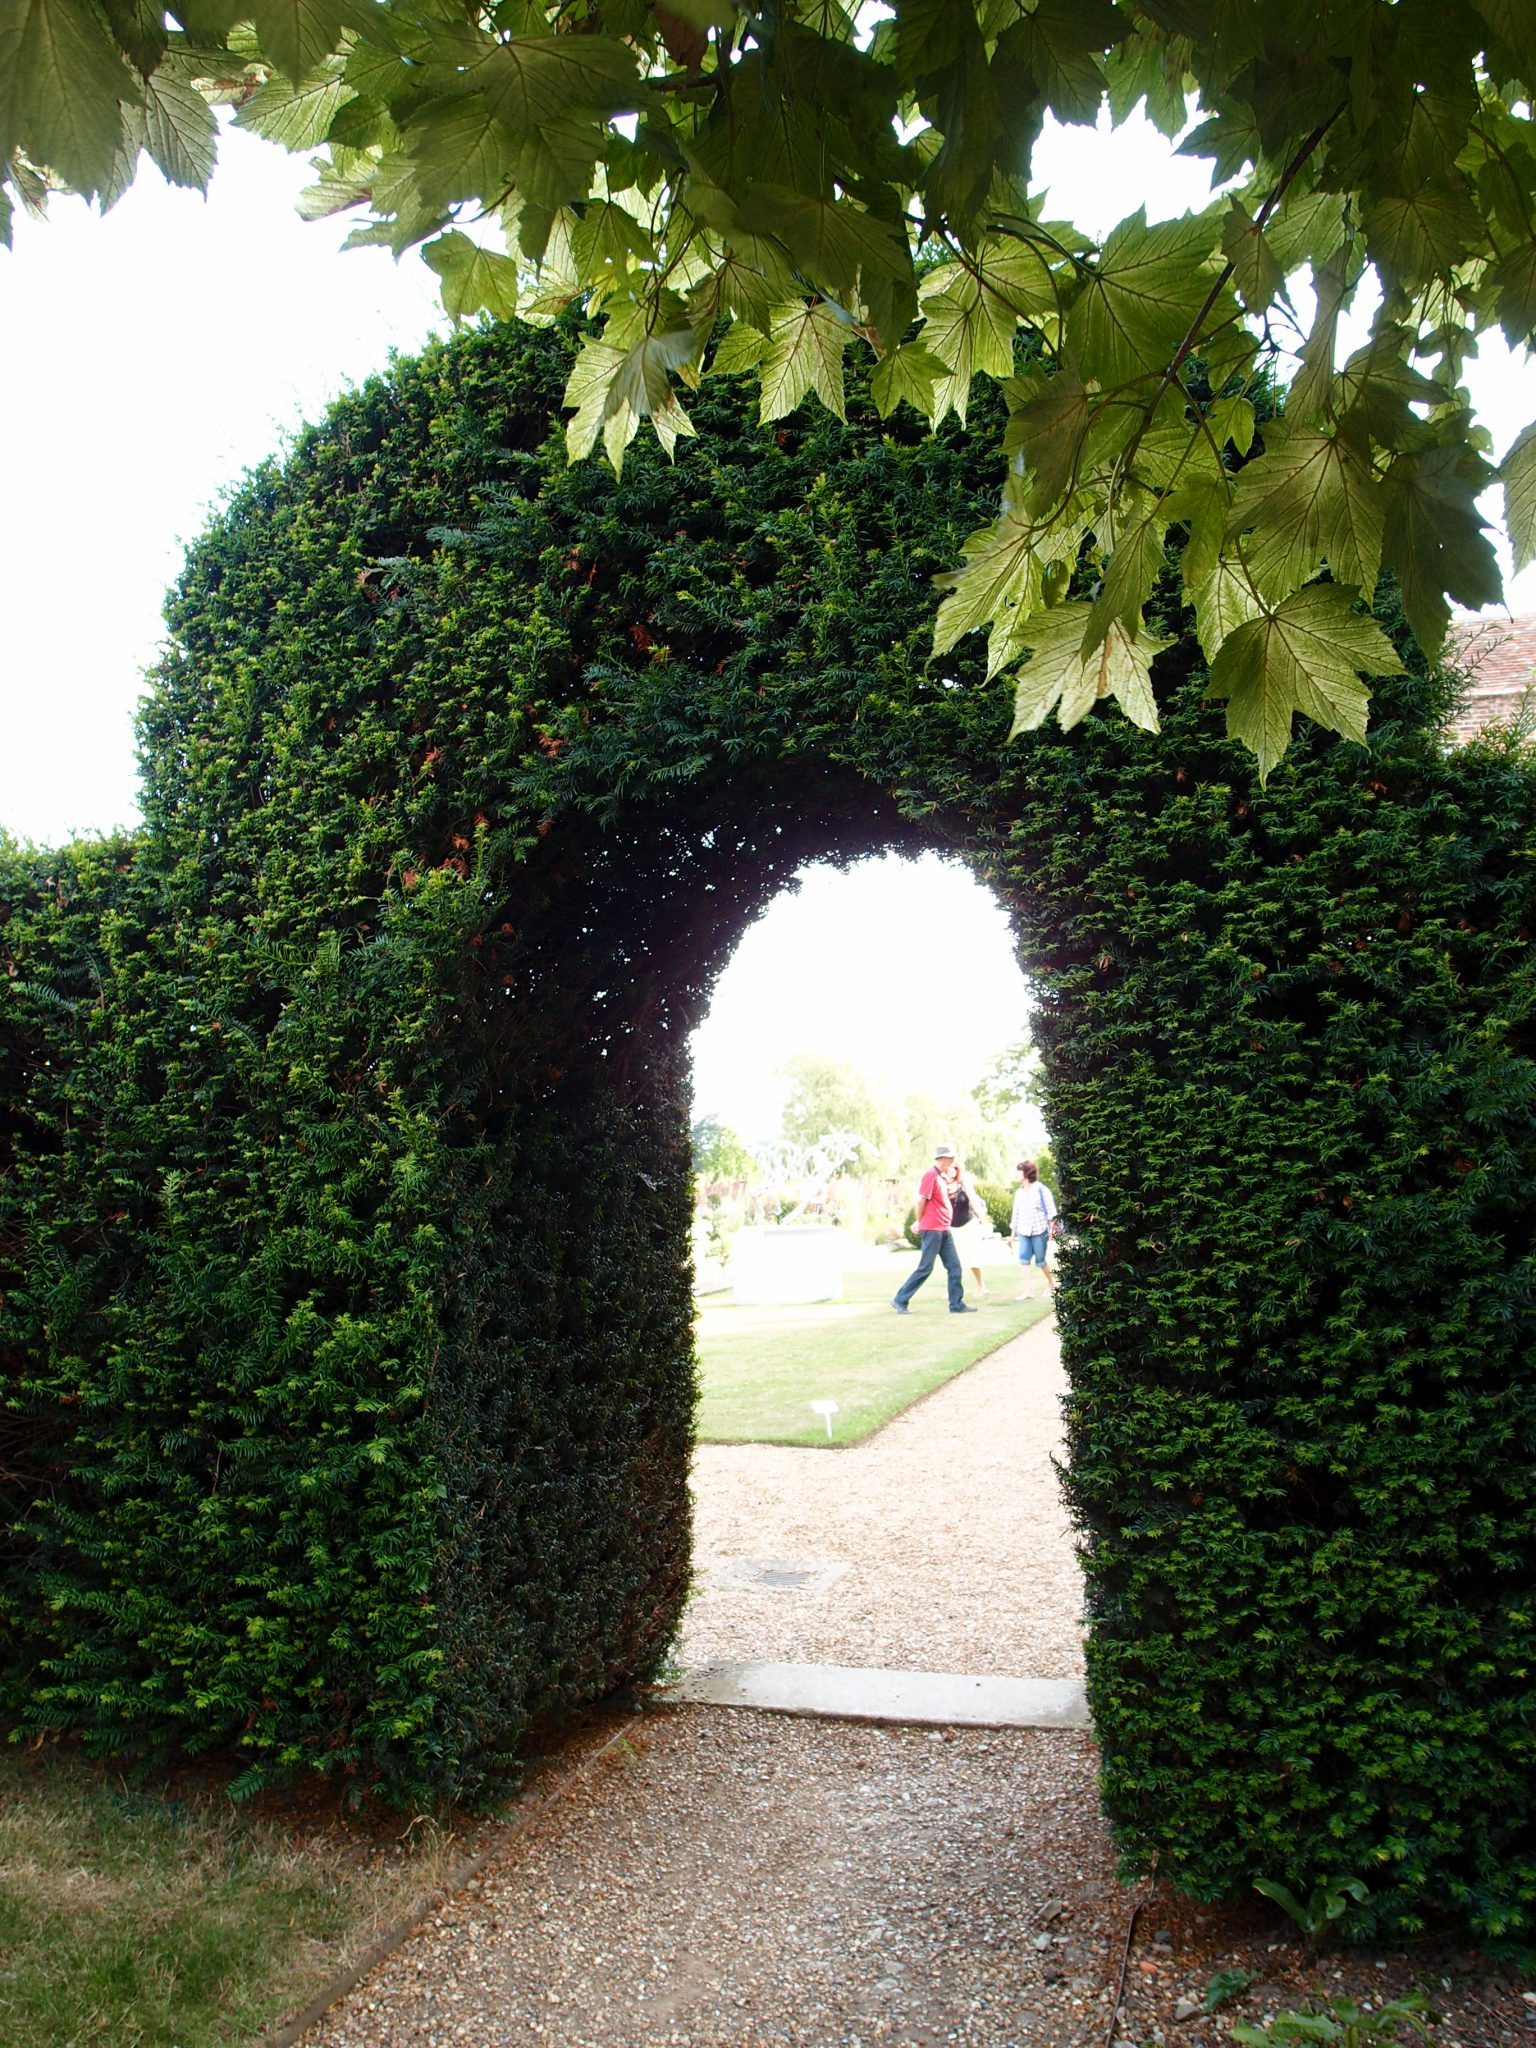 We ducked under this yew arch, and entered the Garden Proper.